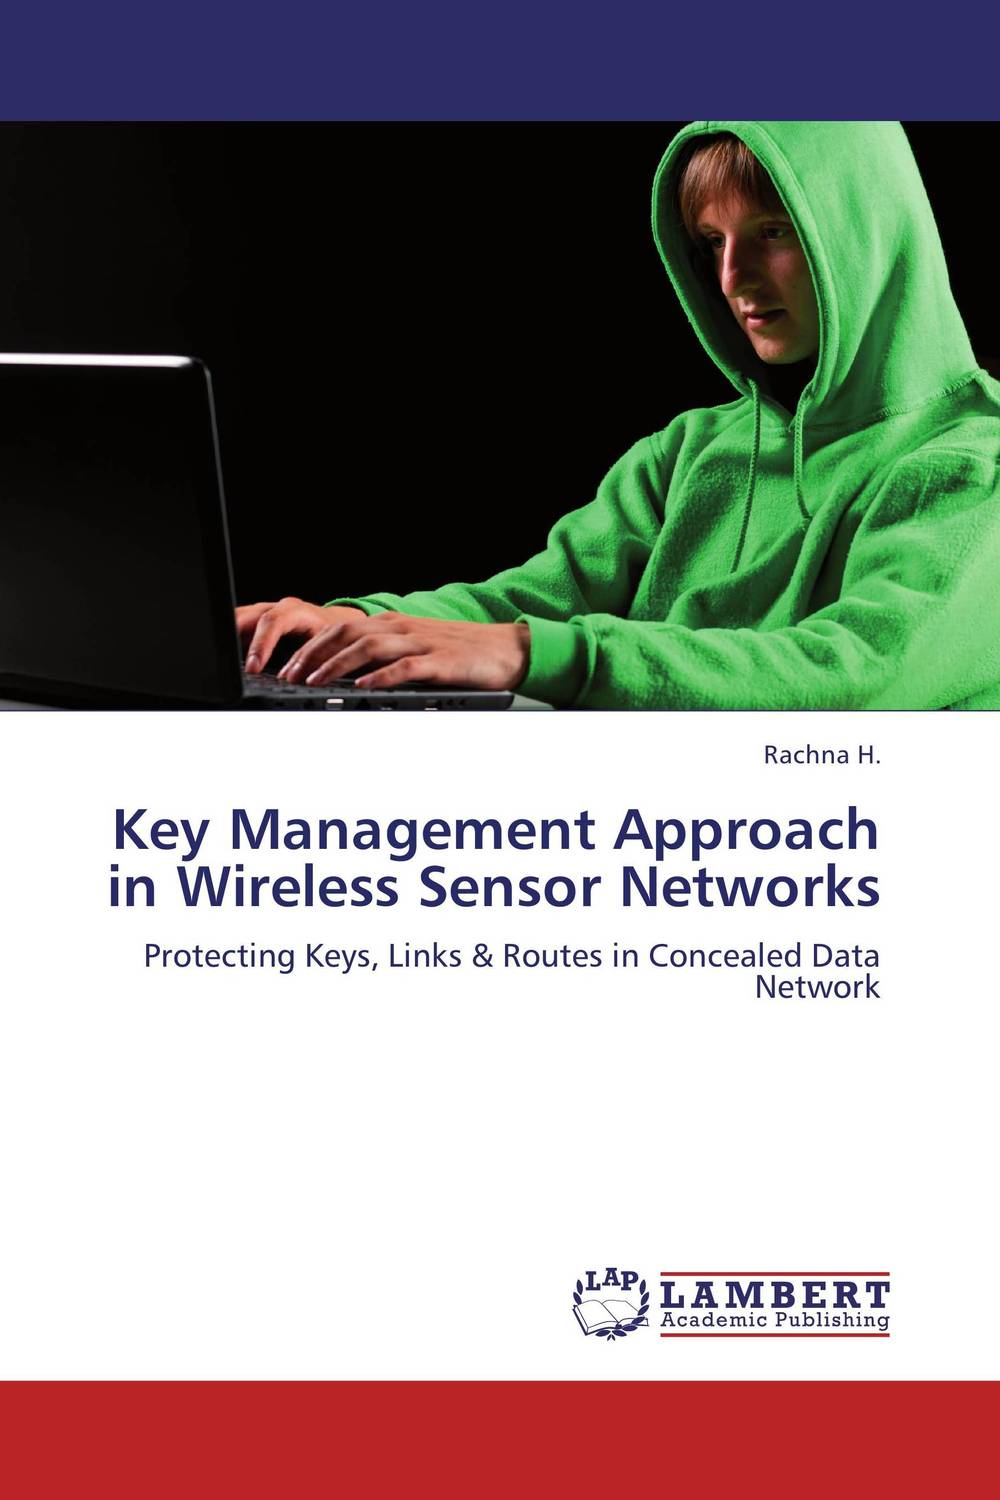 Key Management Approach in Wireless Sensor Networks cms 30 4 набор соль перец туба pavone 781826